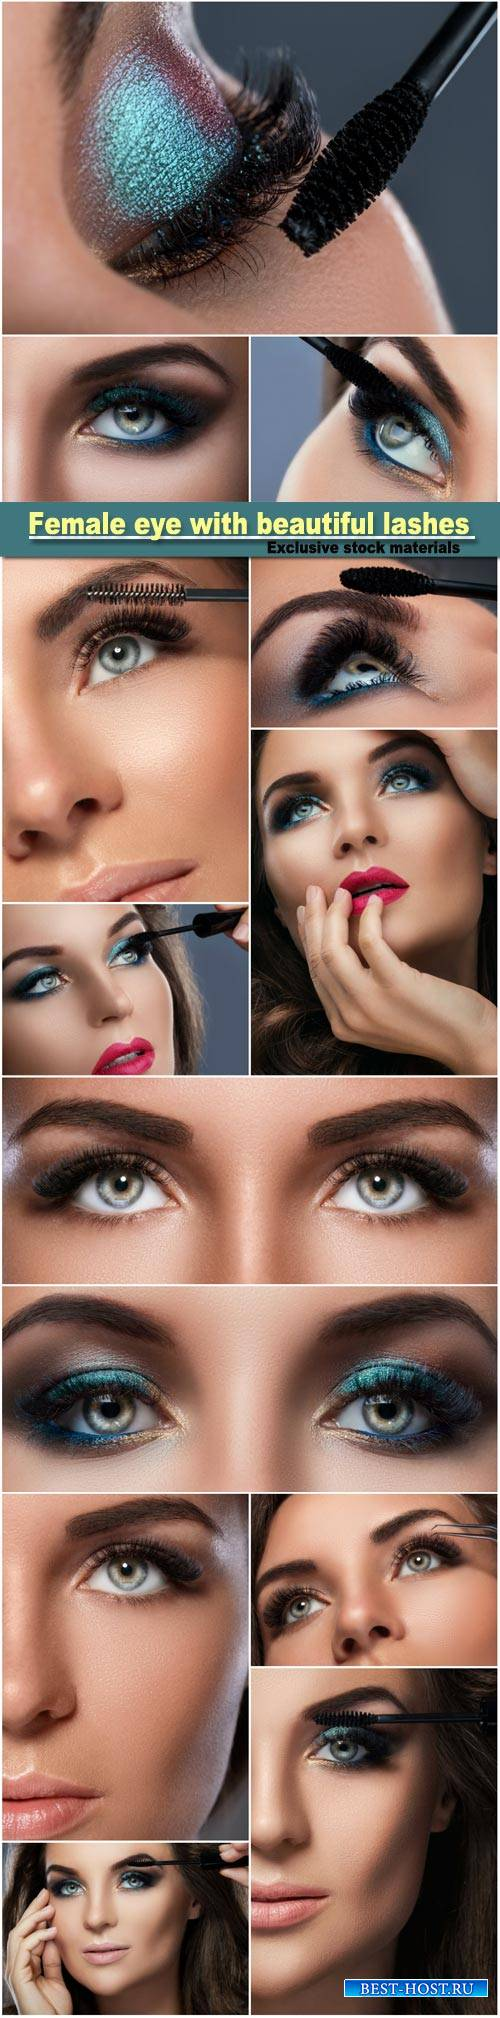 Female eye with beautiful long lashes, make-up